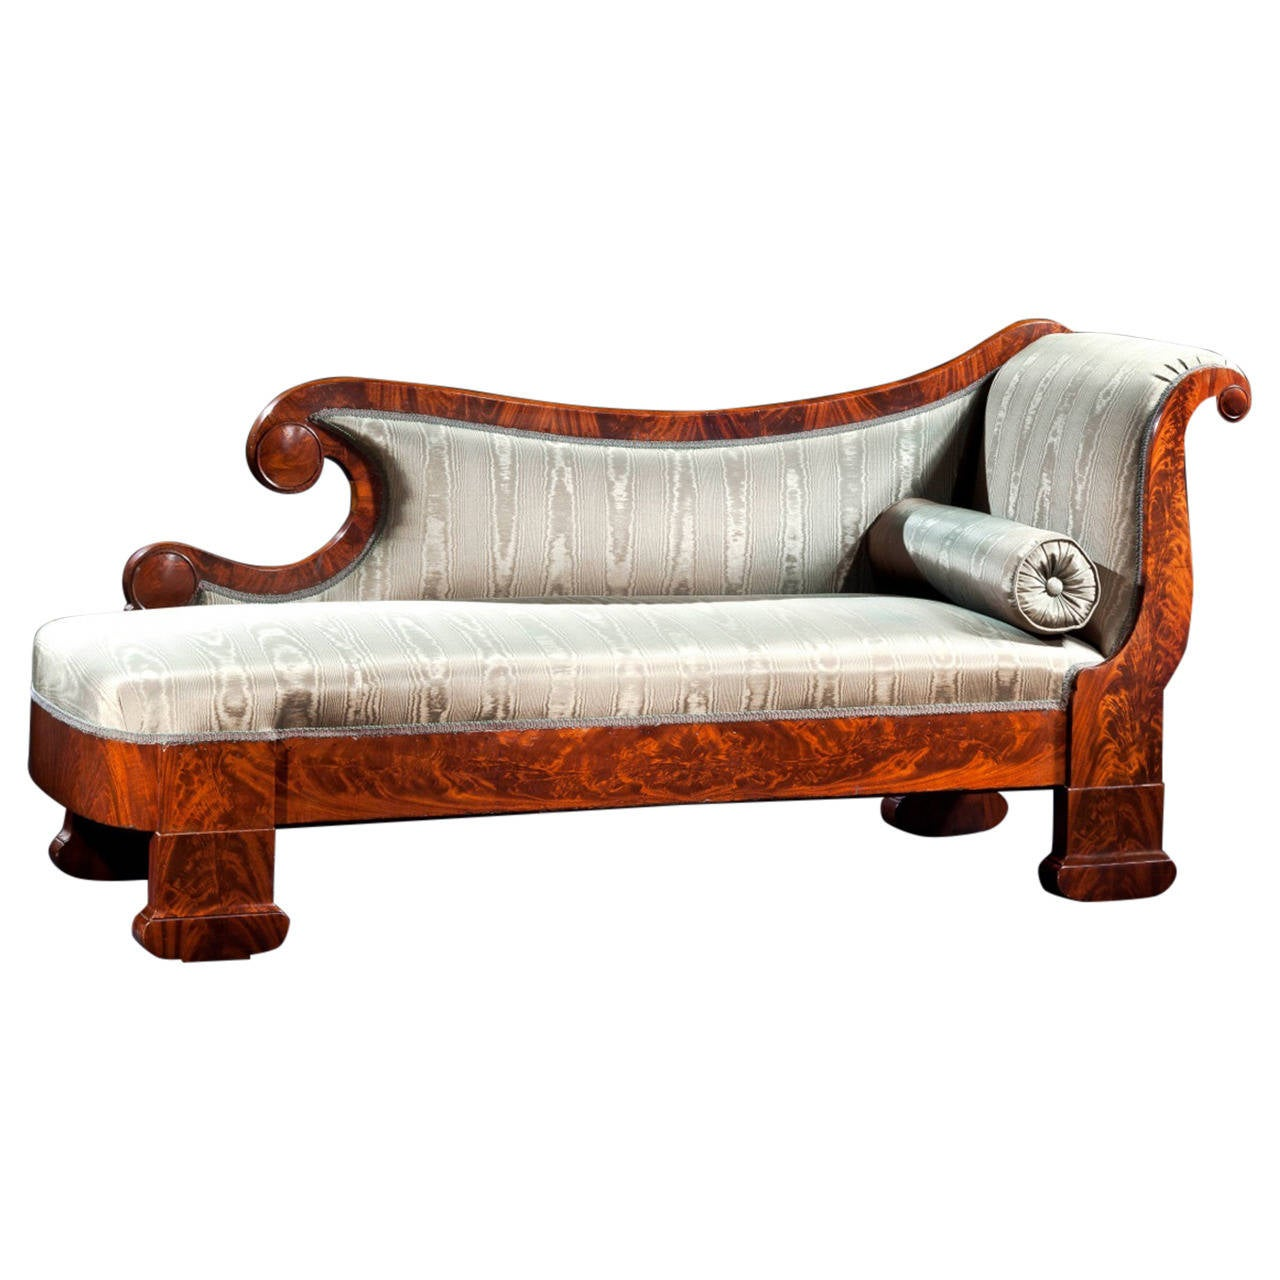 Restoration Grecian Or Recamier Couch Circa 1835 For